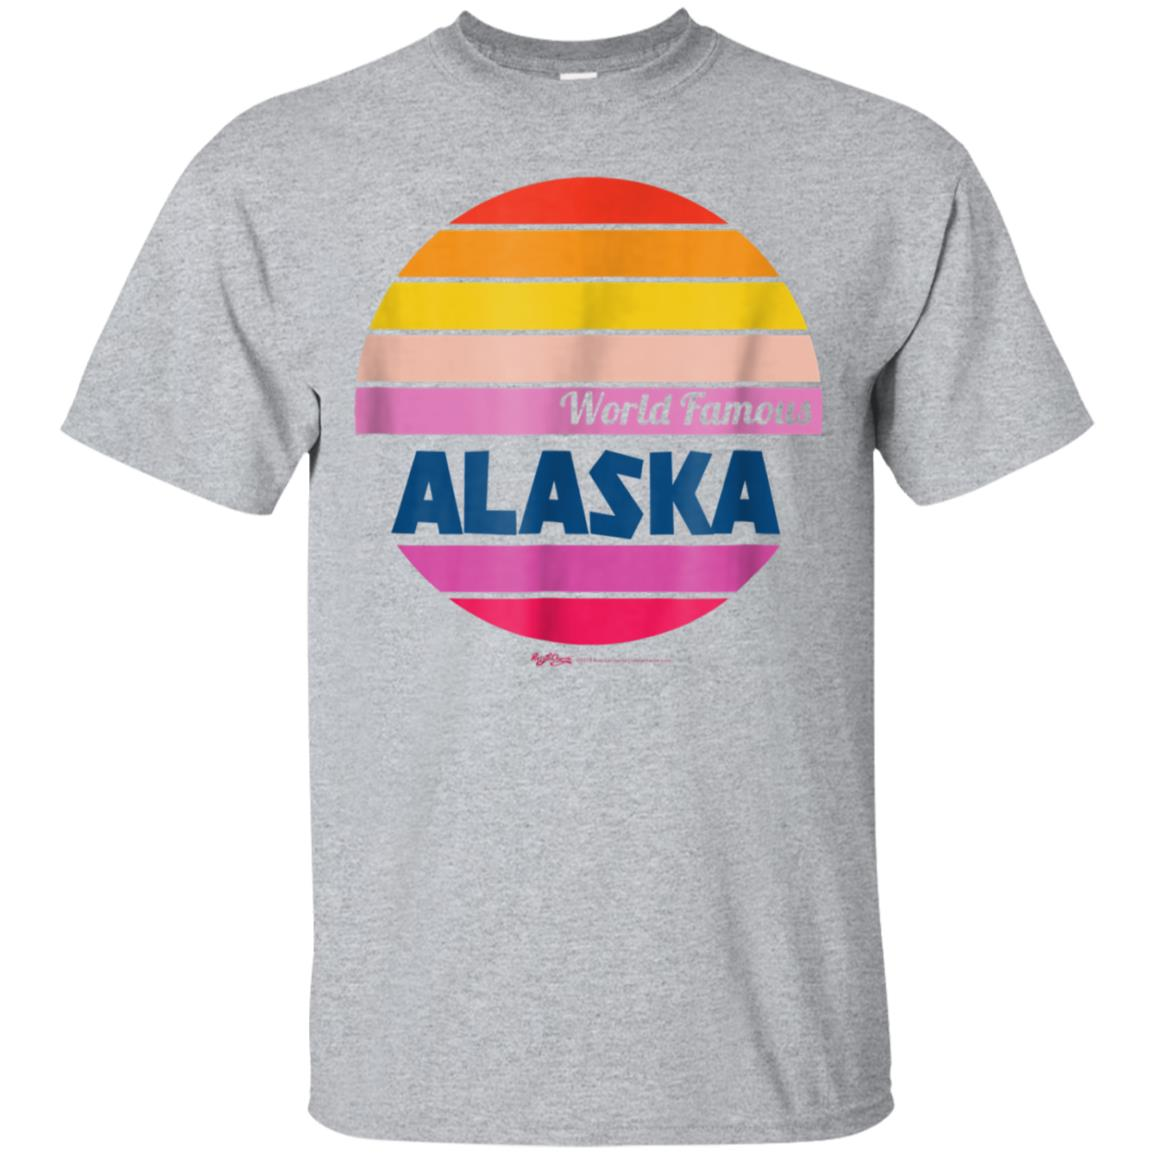 World Famous Alaska Flag T Shirt for Women, Men and Kids 99promocode